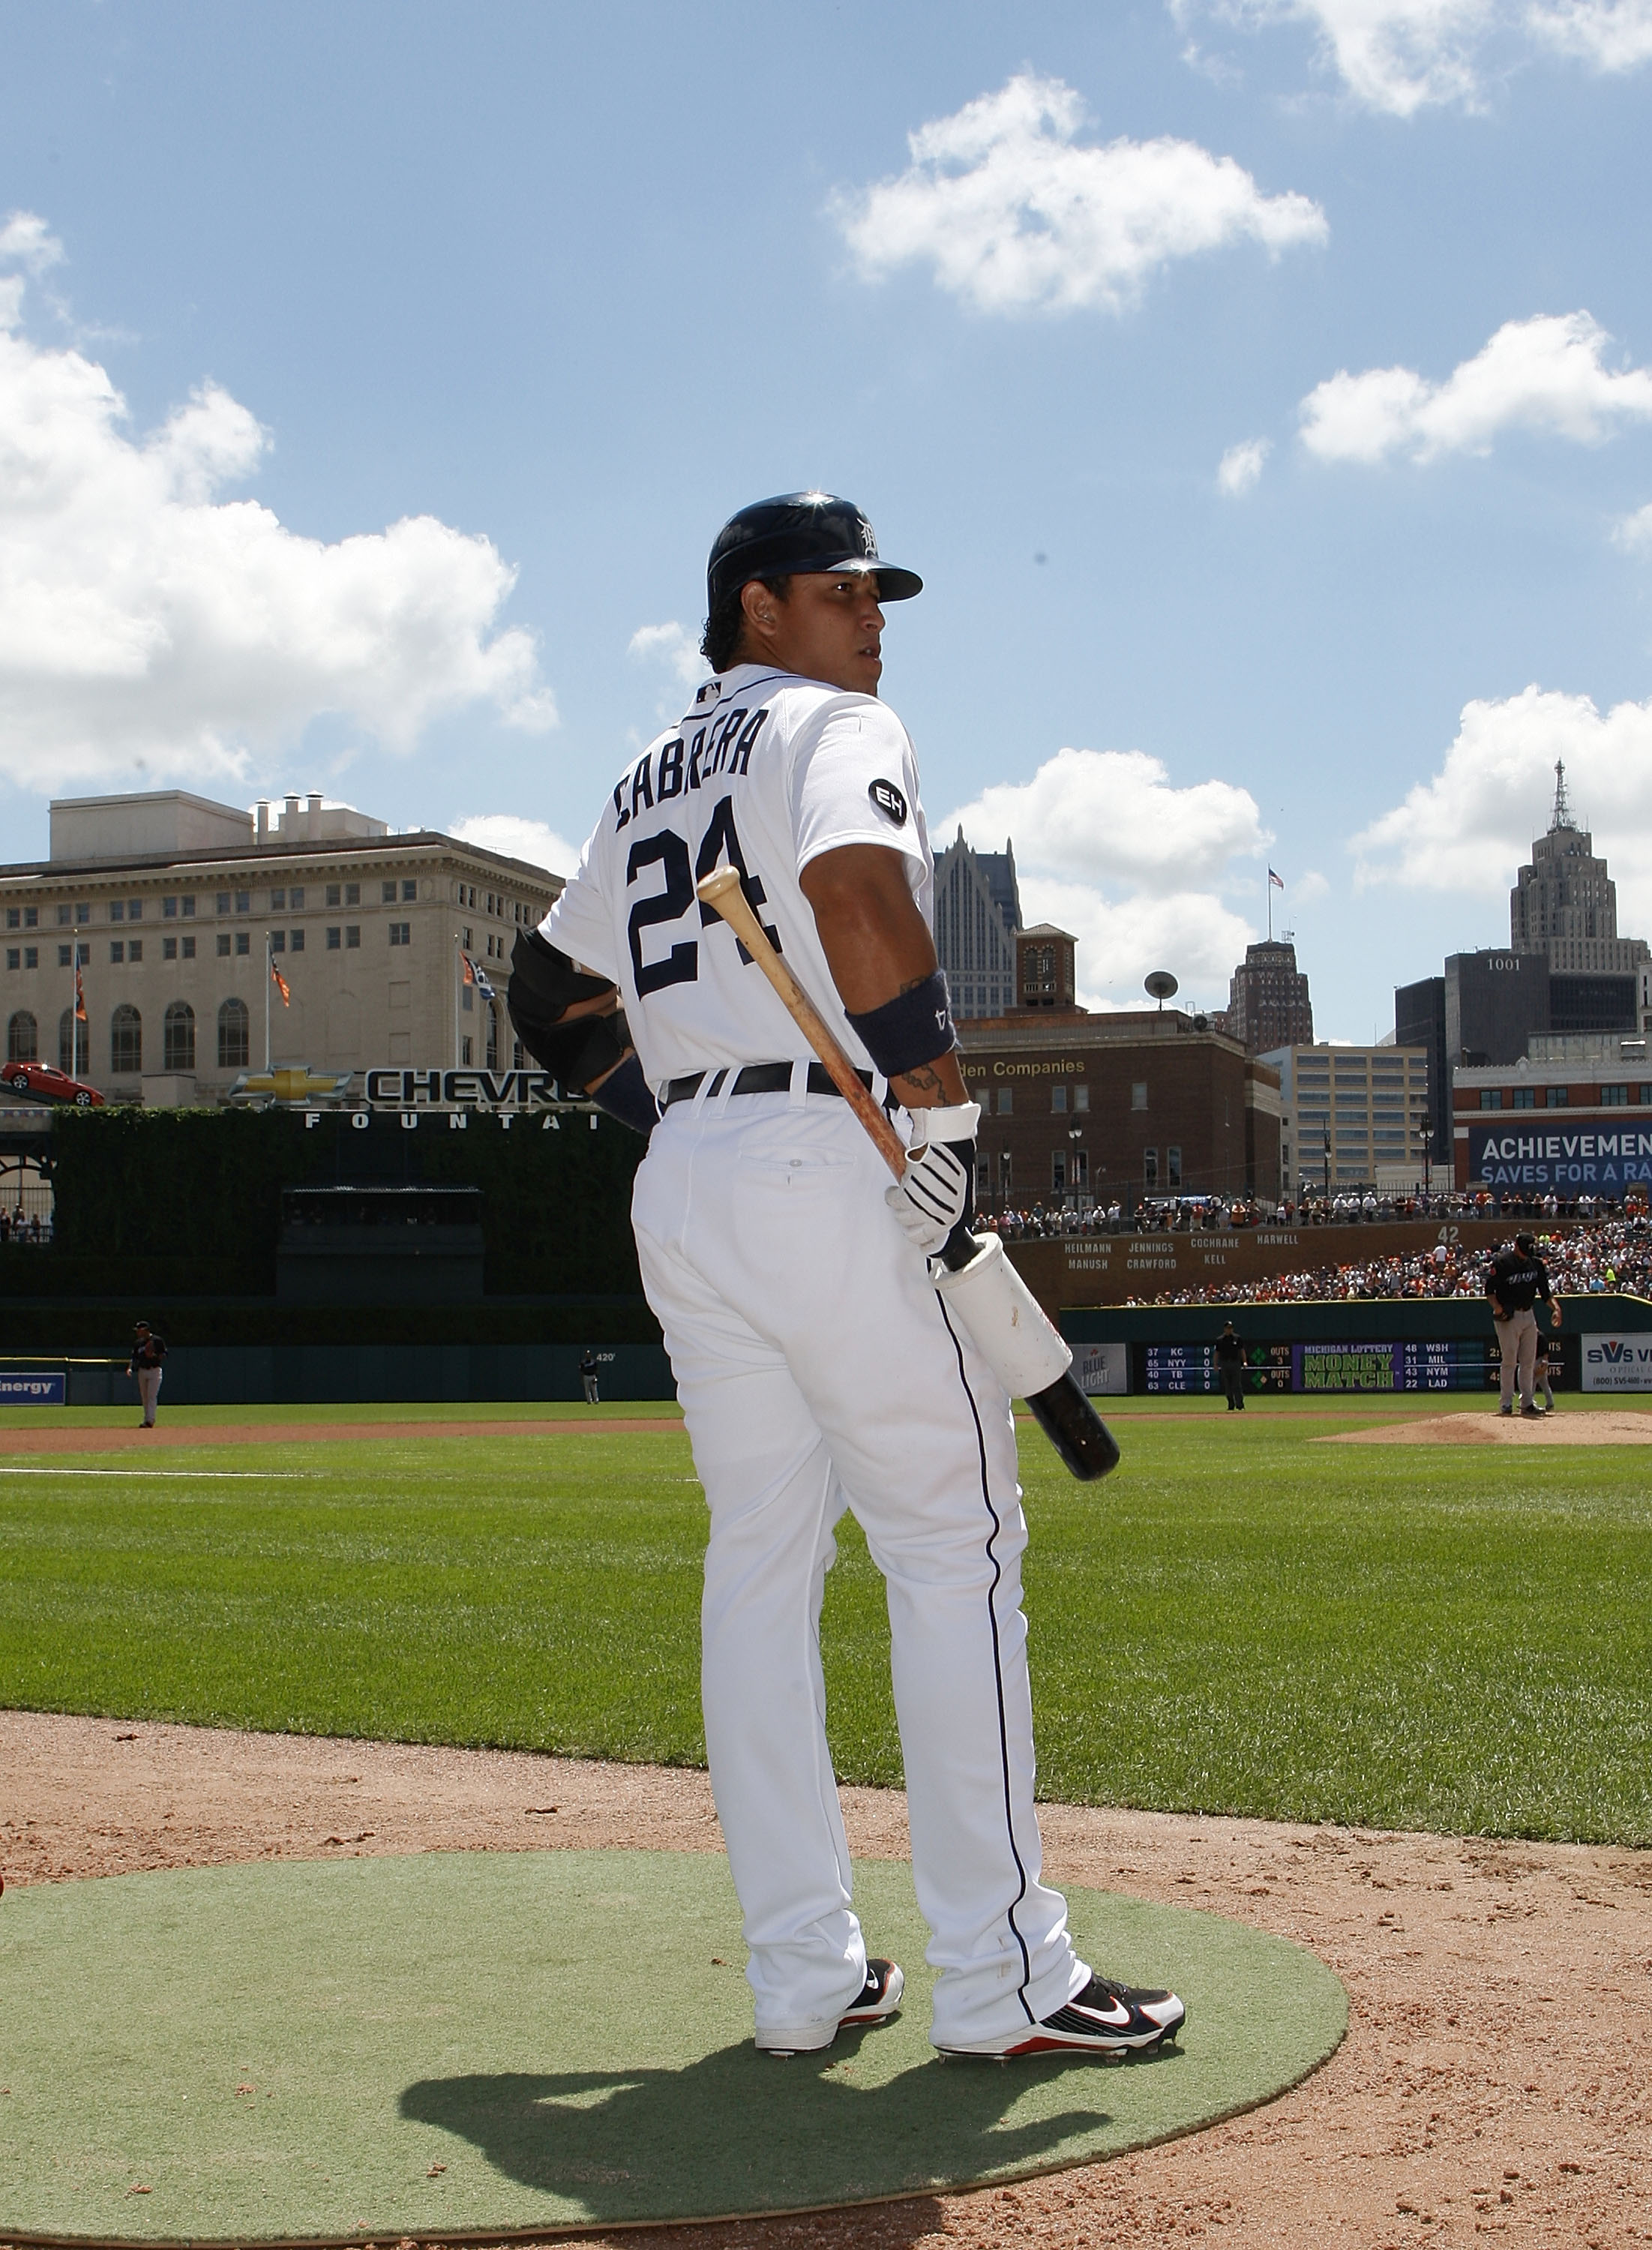 DETROIT - JULY 25: Miguel Cabrera #24 of the Detroit Tigers gets ready to bat during the first inning against the  Toronto Blue Jays on July 25, 2010 at Comerica Park in Detroit, Michigan. The Blue Jays defeated the Tigers 5-3.  (Photo by Leon Halip/Getty